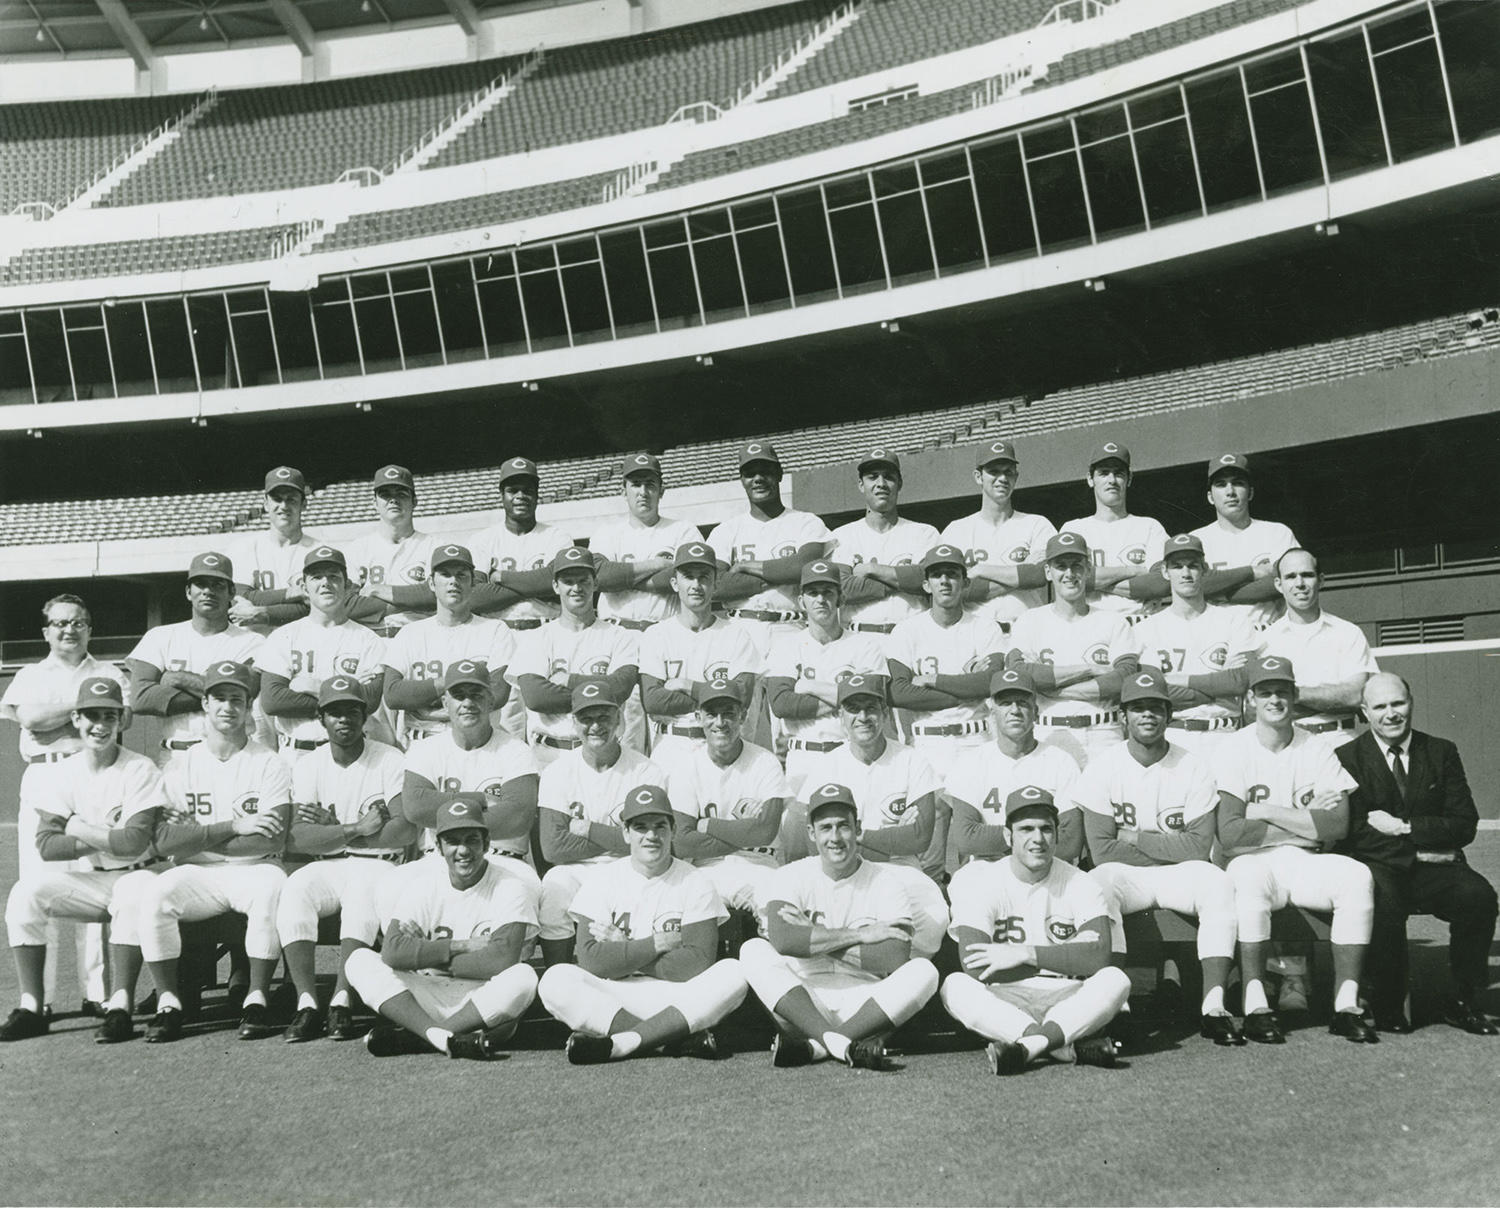 """Tommy Helms, who played for the Cincinnati Reds from 1964-1971, helped contribute to their National League pennant win in 1970. In this team photo from that year, Helms sits seventh from the left in the third row. <a href=""""https://collection.baseballhall.org/PASTIME/cincinnati-reds-team-photograph-1970"""">PASTIME</a> (National Baseball Hall of Fame and Museum)"""